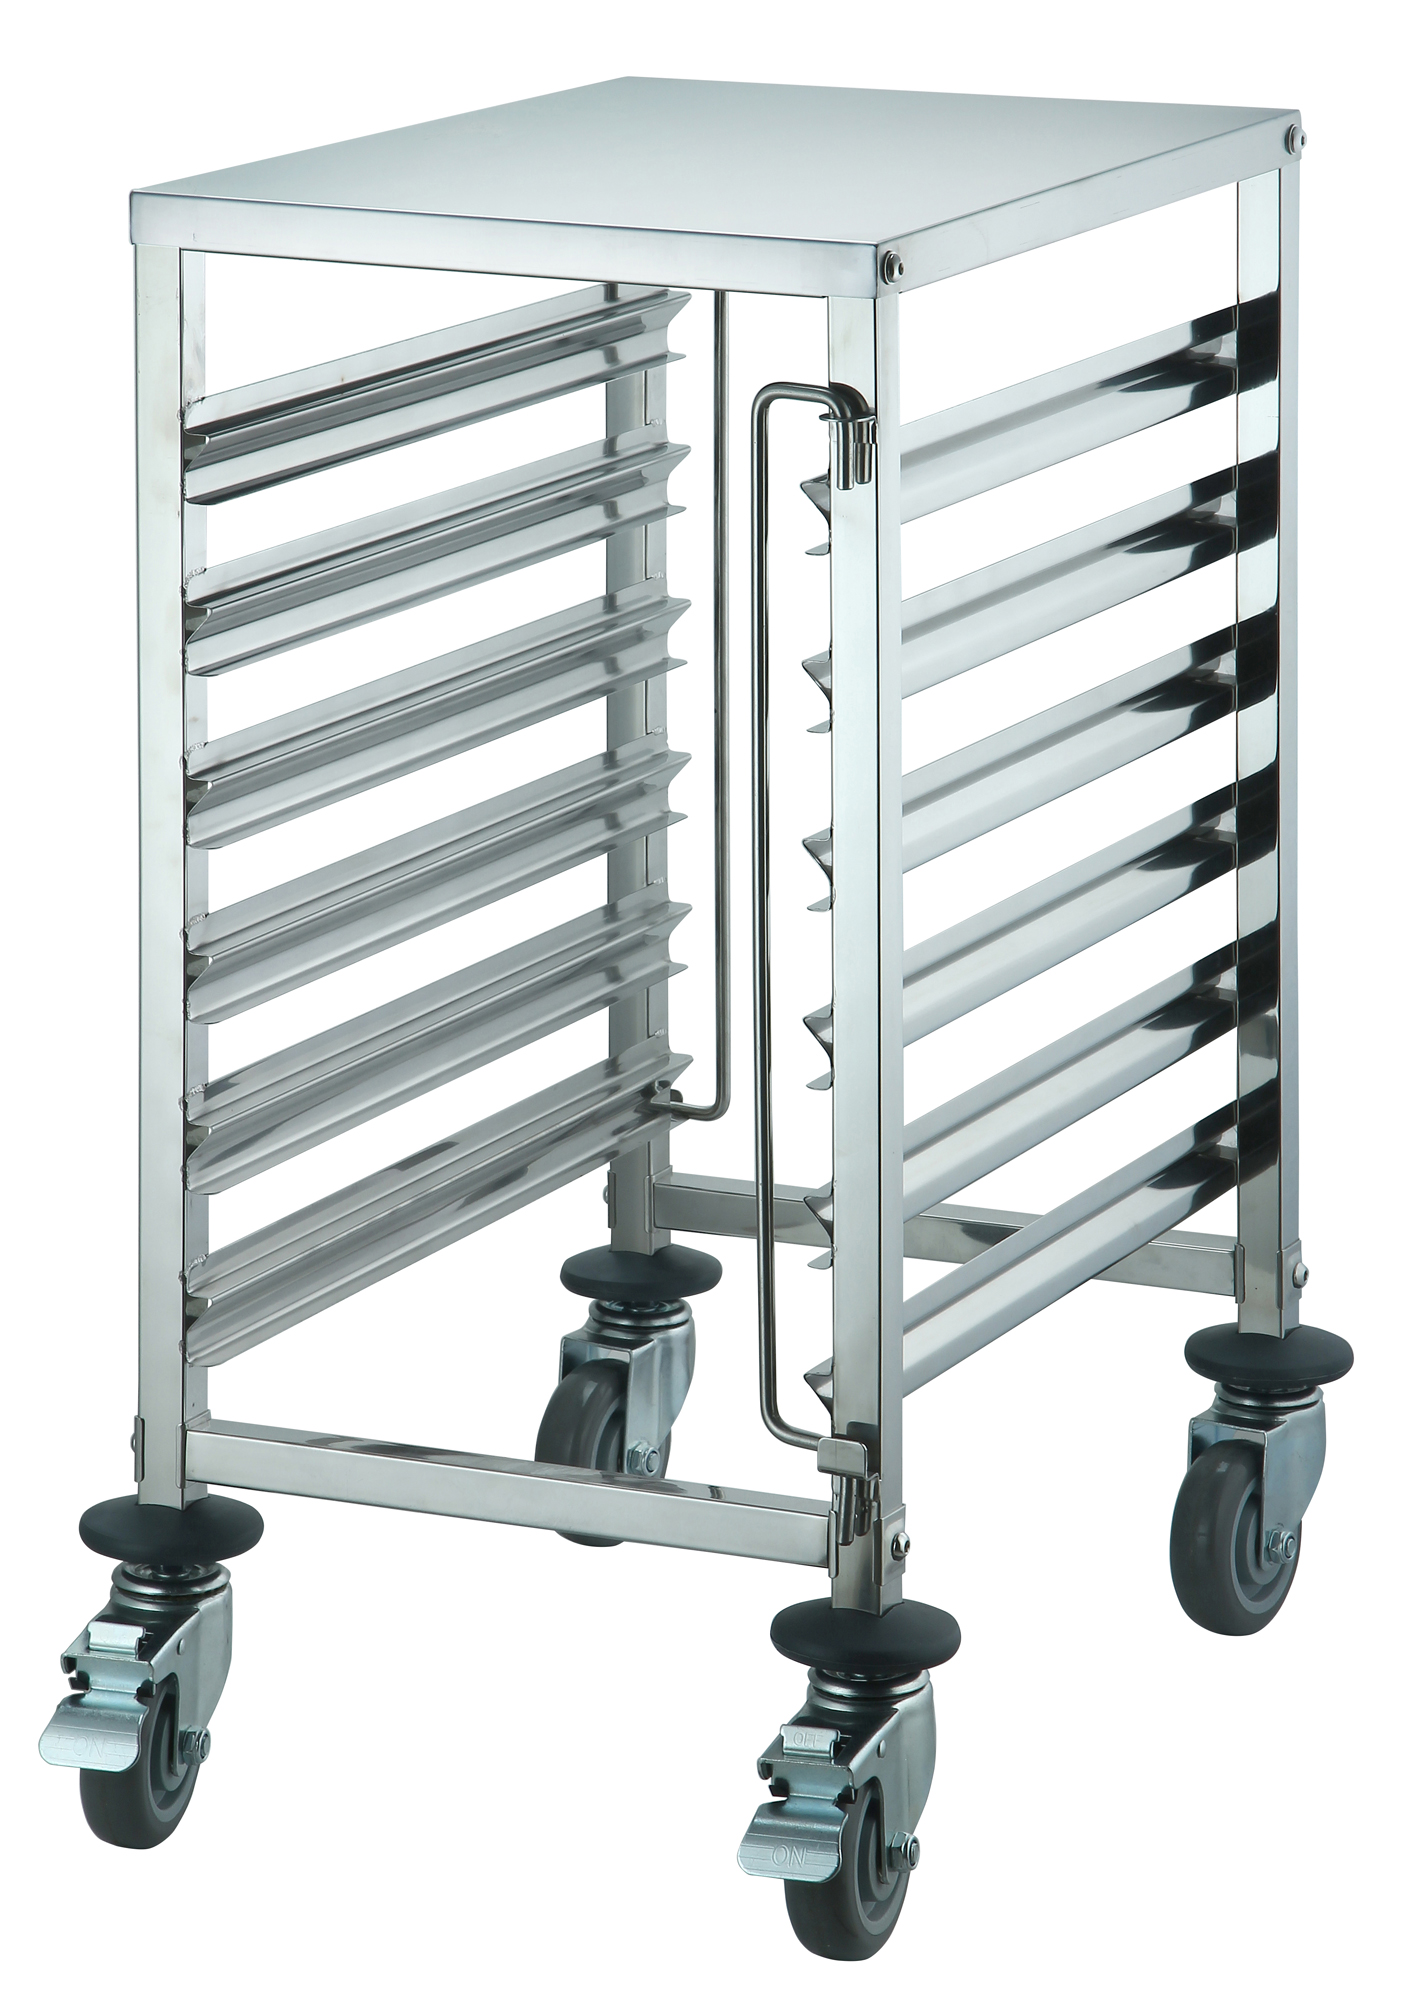 Winco SRK-CTB steam pan rack